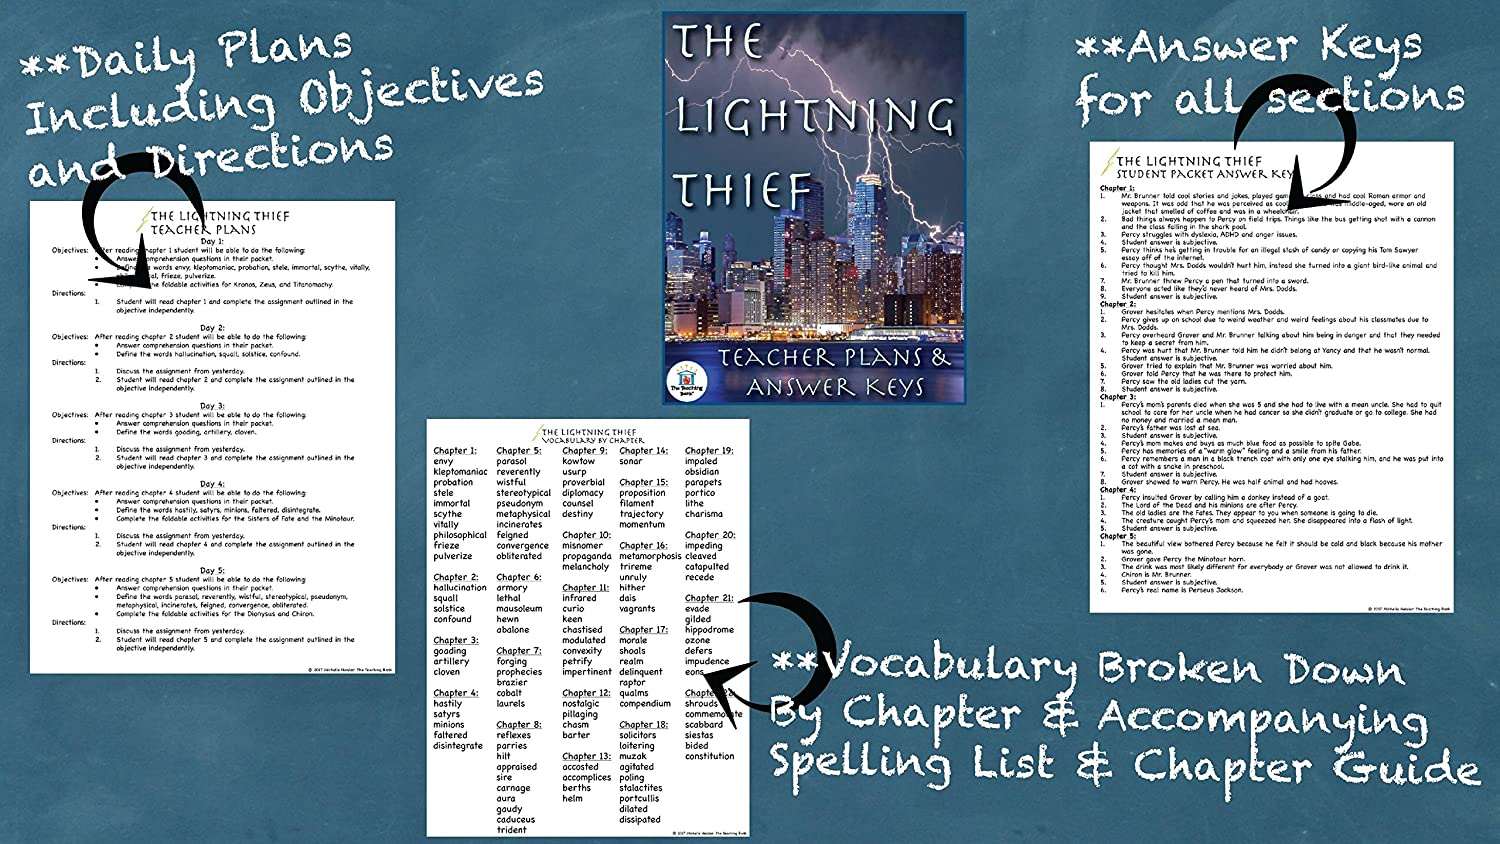 Amazon.com : The Lightning Thief Novel Study Book Unit CD : Teachers  Professional Development Resources : Office Products